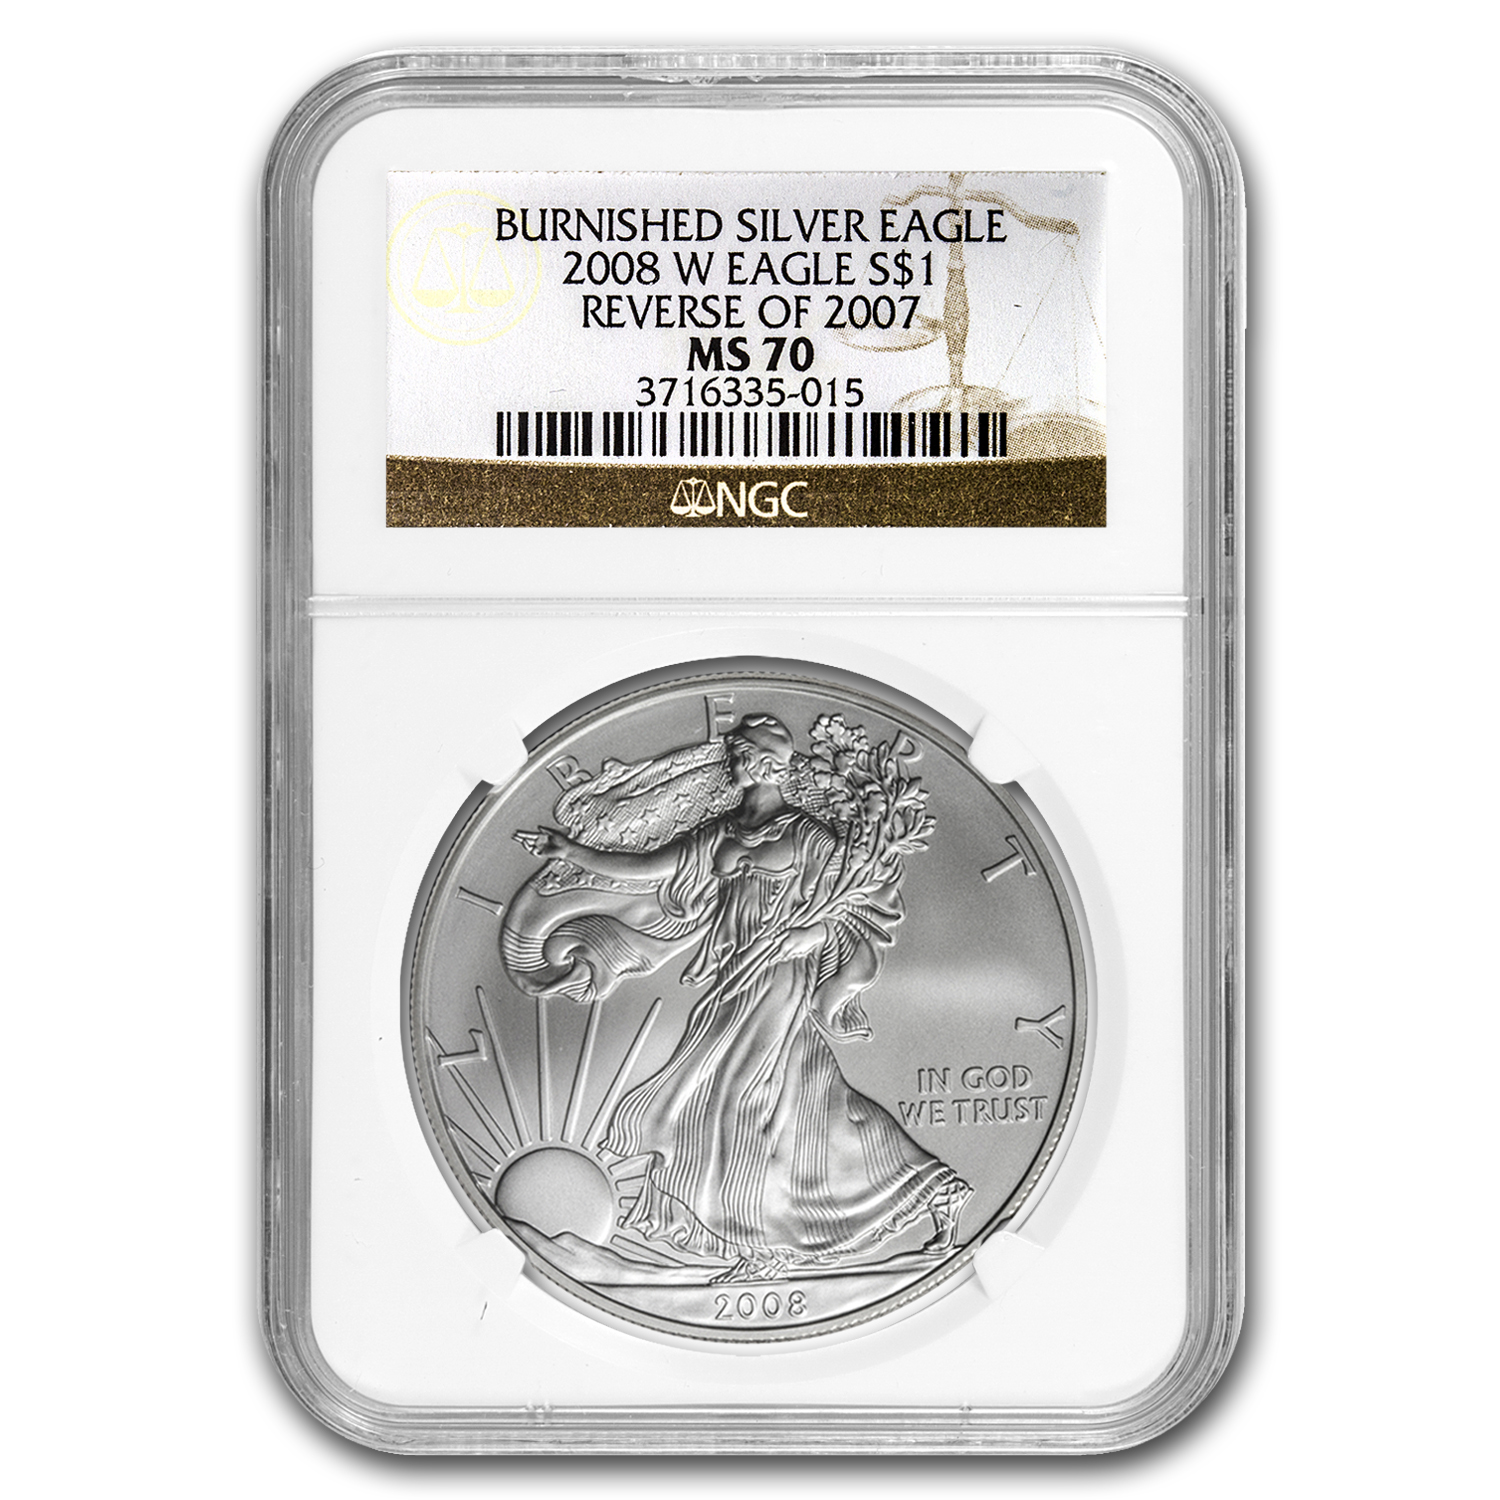 2008-W Burnished Silver American Eagle MS-70 NGC (Rev '07)